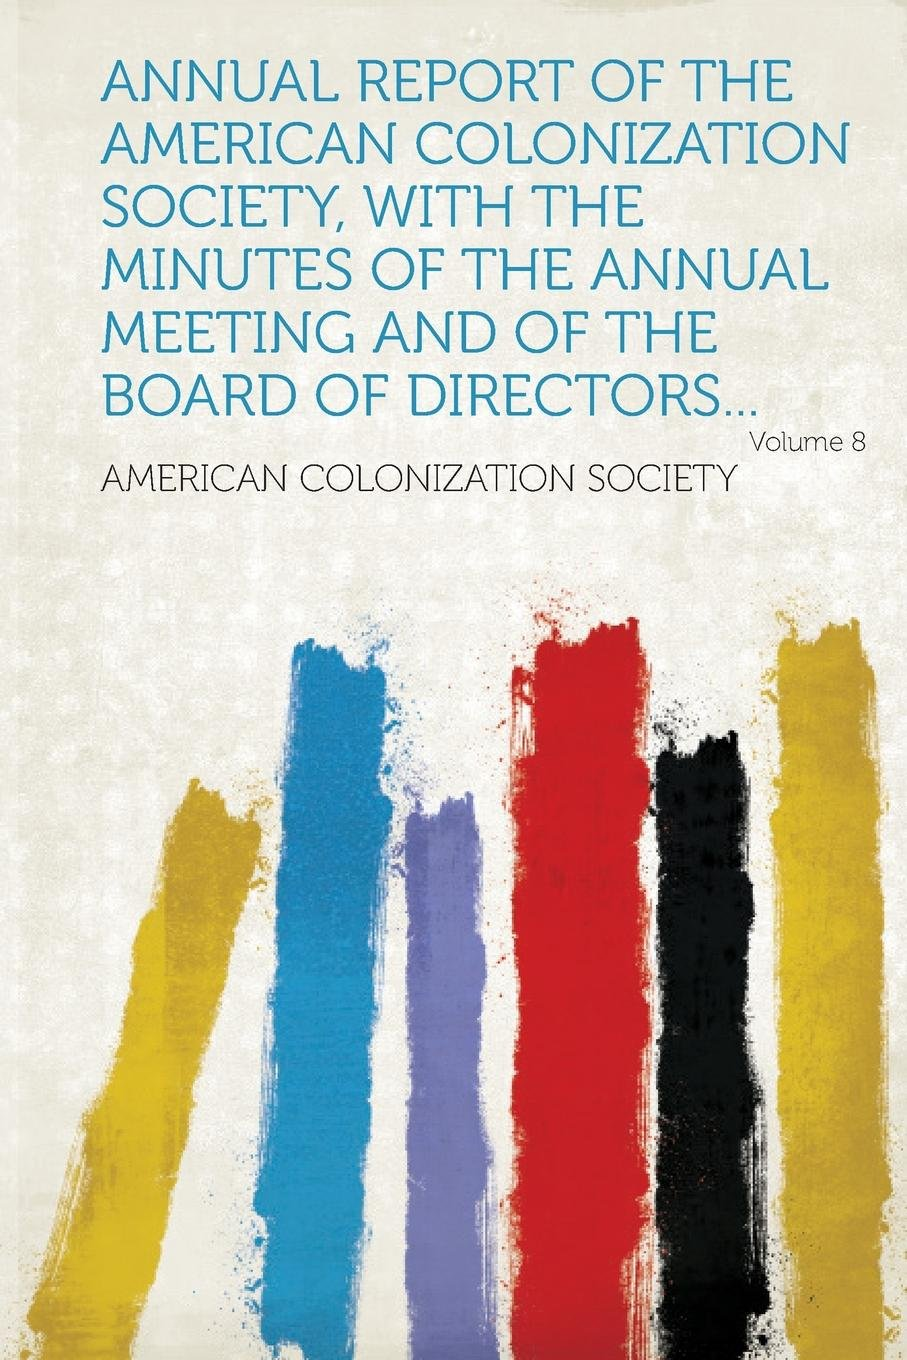 Download Annual report of the American Colonization Society, with the minutes of the annual meeting and of the Board of Directors... Volume 8 pdf